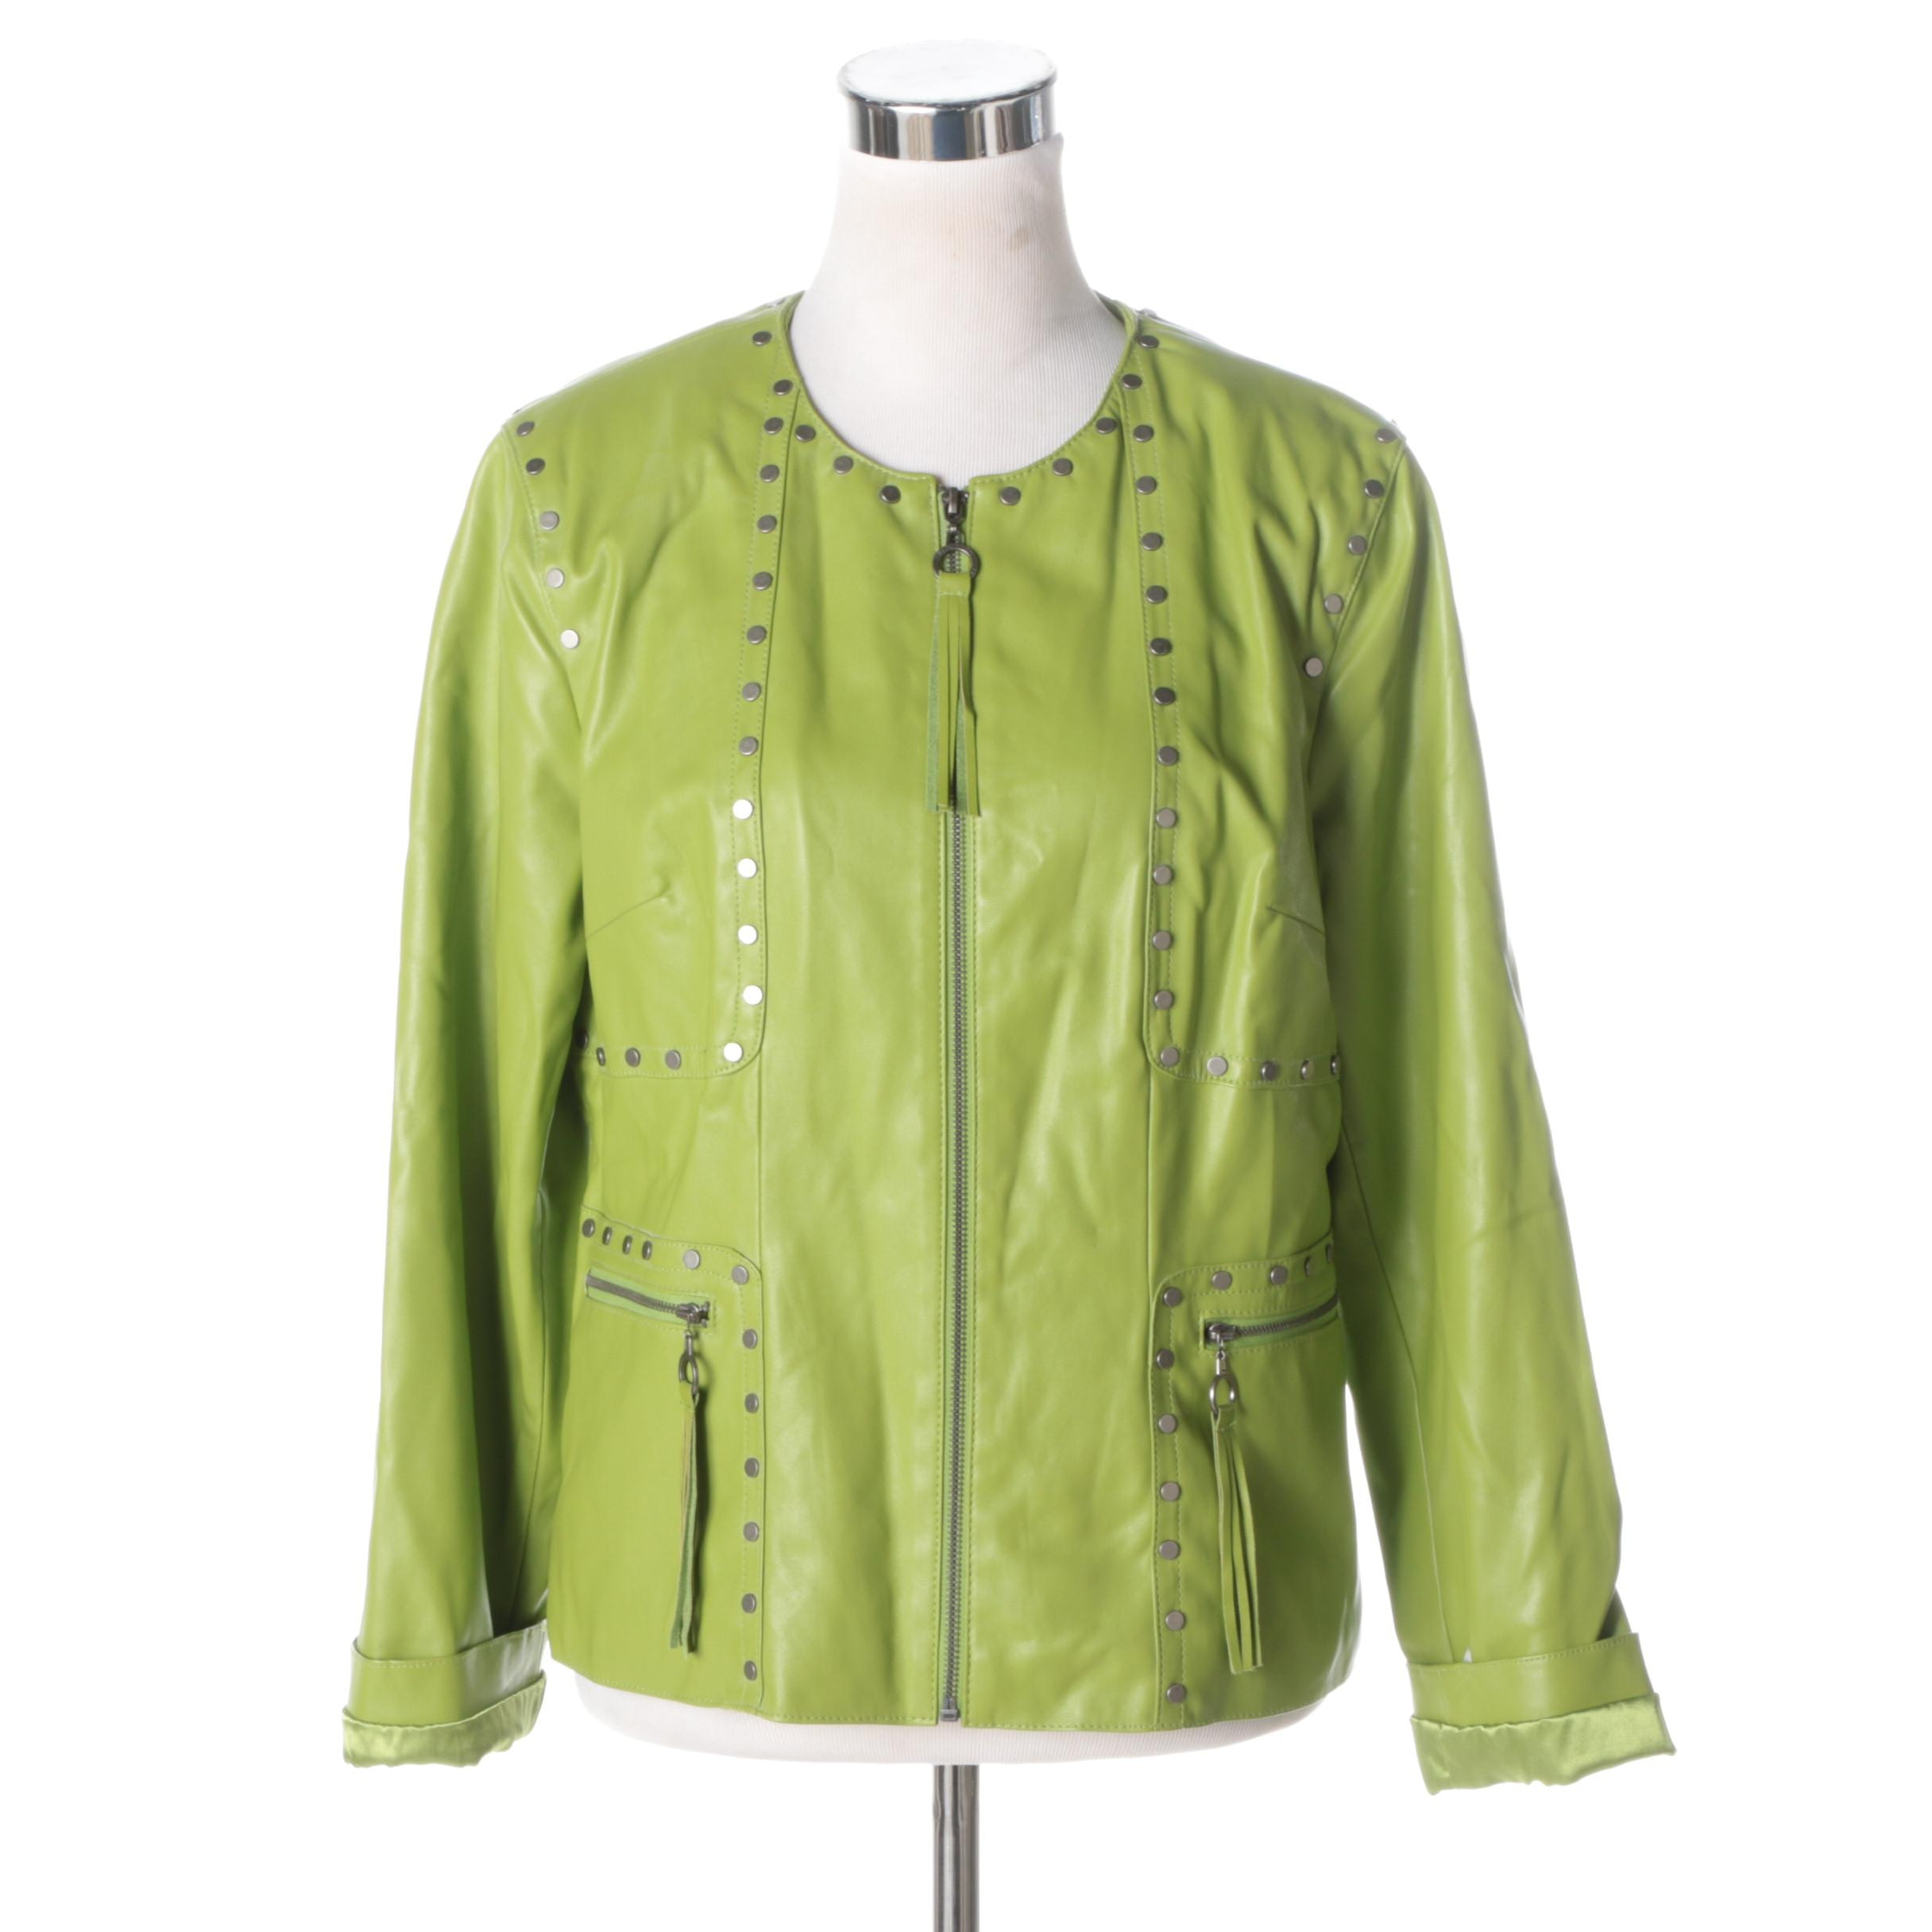 Women's Chi by Falchi Lime Green Faux Leather Jacket